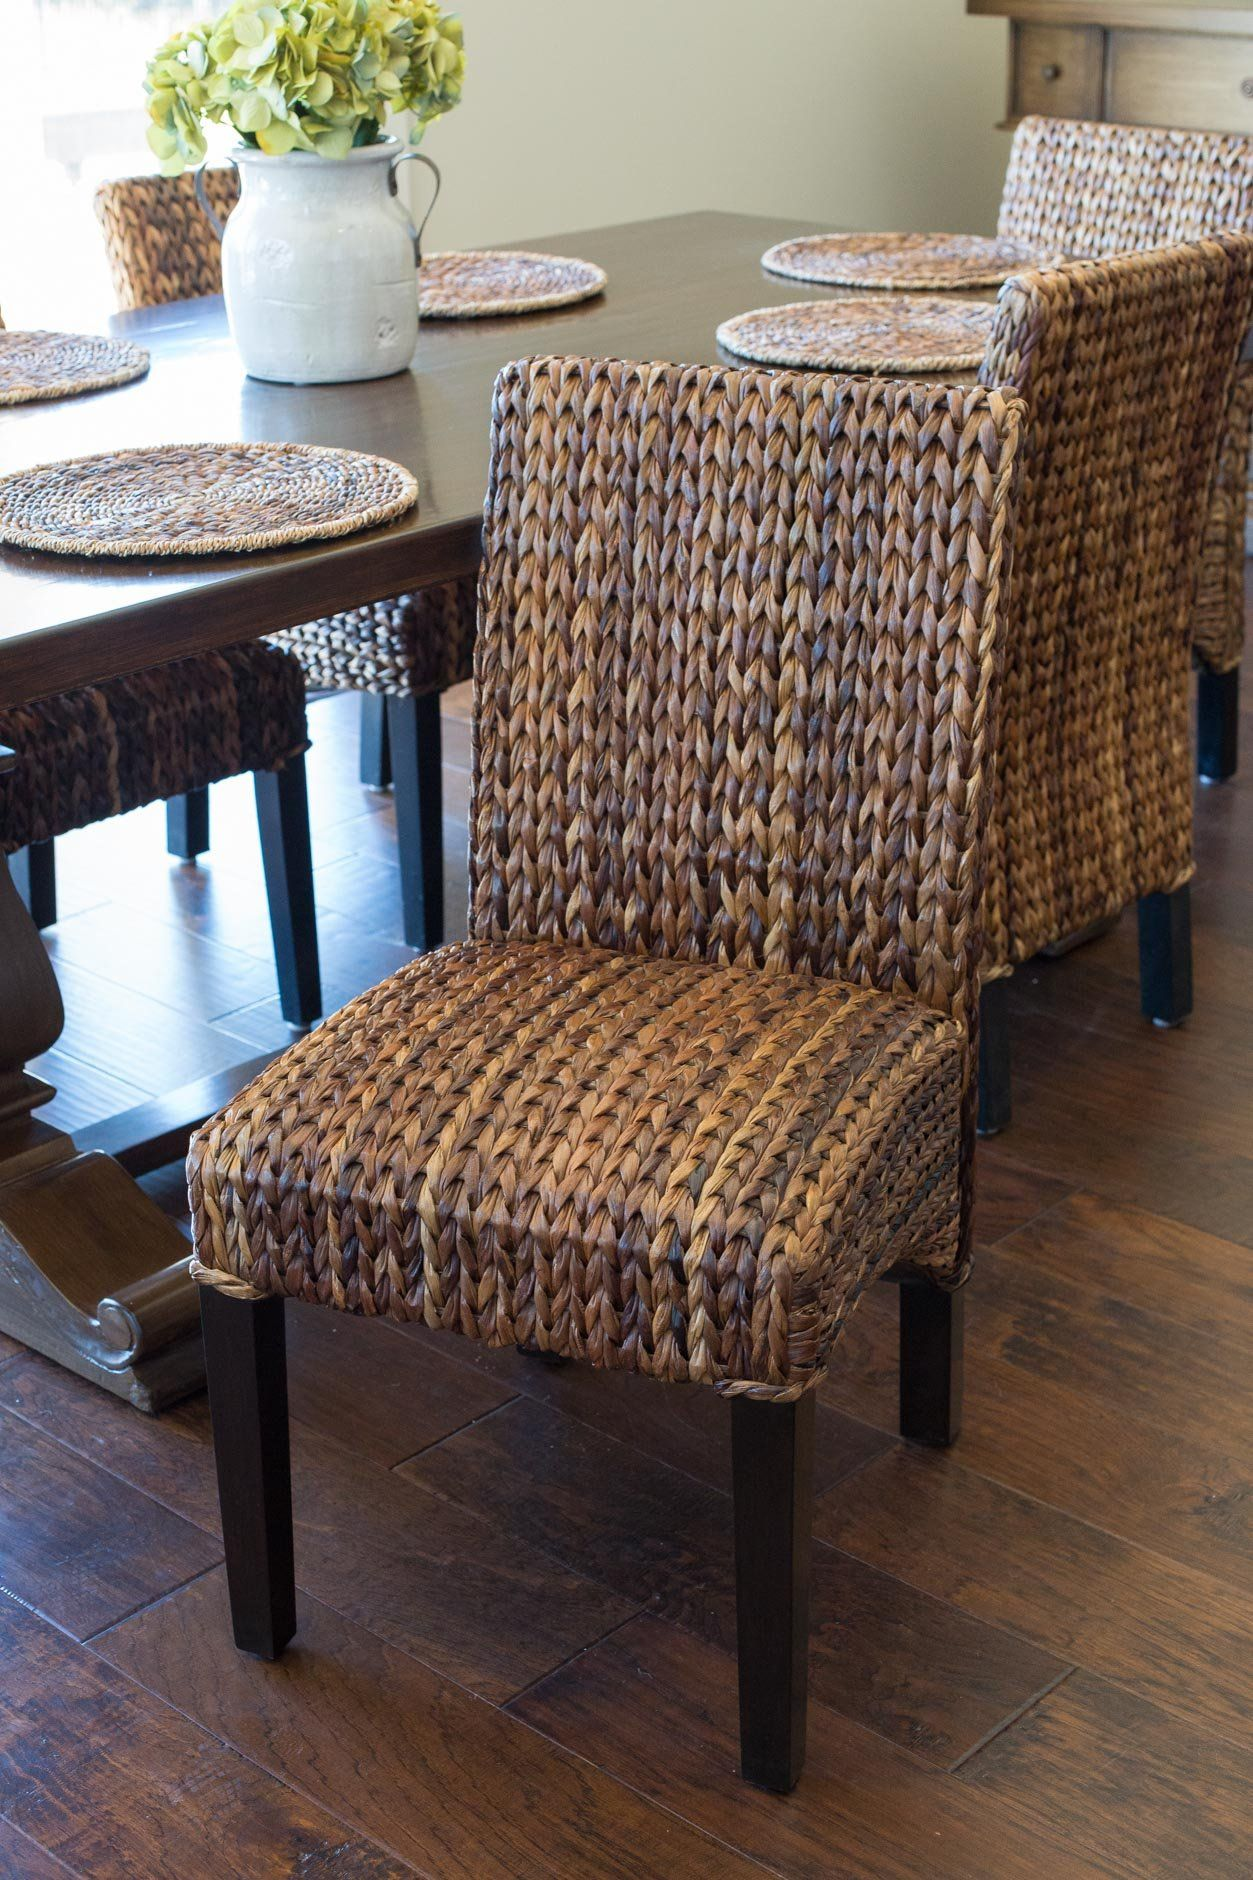 Birdrock home abaca and seagrass side chair set 2 pc